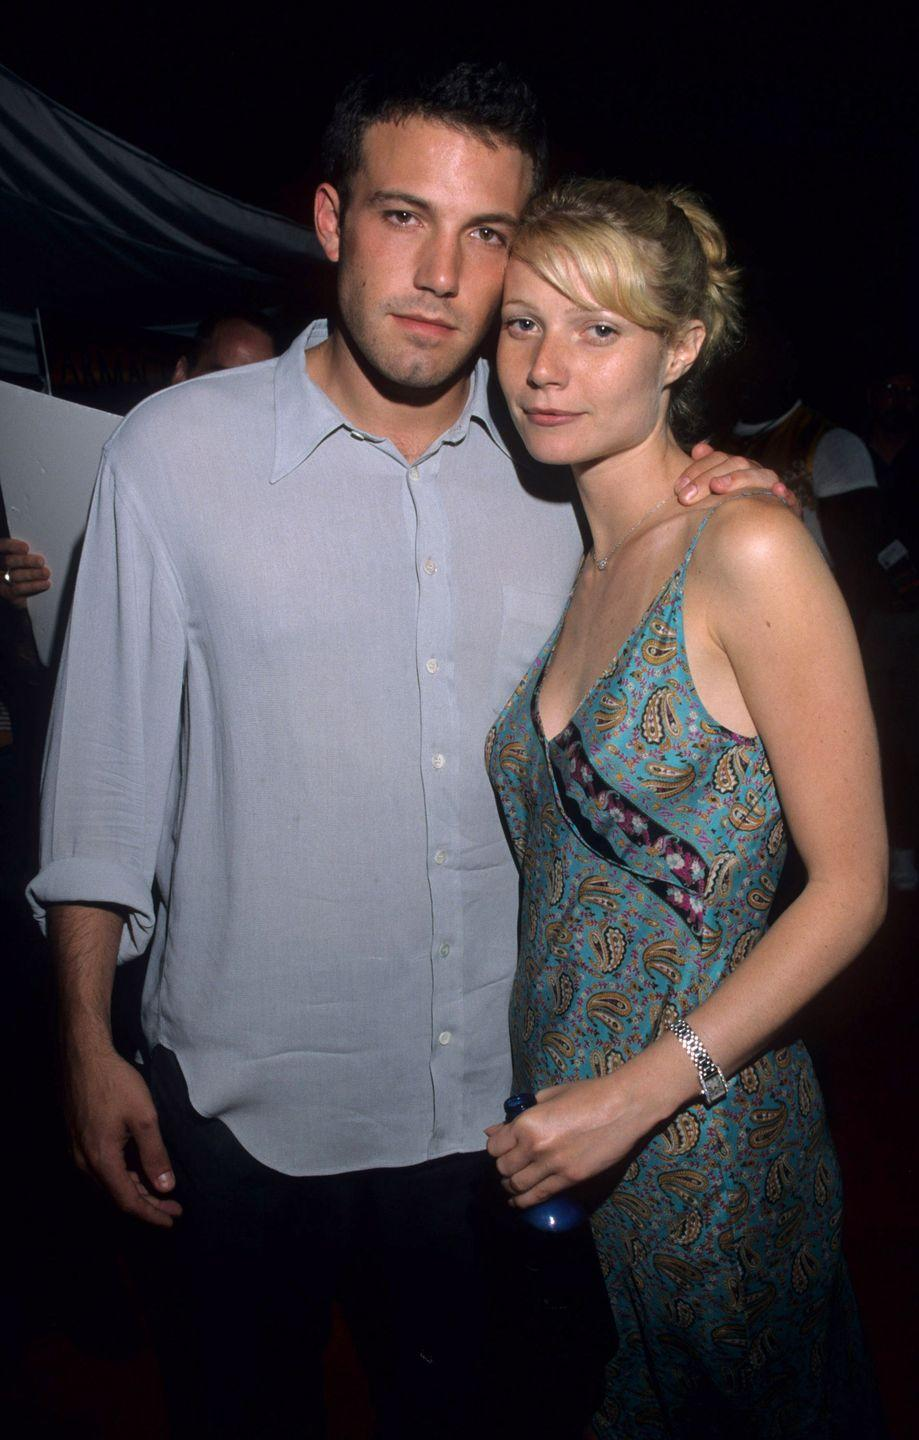 <p>Paltrow and Affleck's romance was heating up during the filming of 1998 film <em>Shakespeare in Love</em>—she played the protagonist, Viola de Lesseps, while he played Ned Allen, an actor. The couple ended their romance in 2000, the same year their romance film <em>Bounce</em> was released.</p>